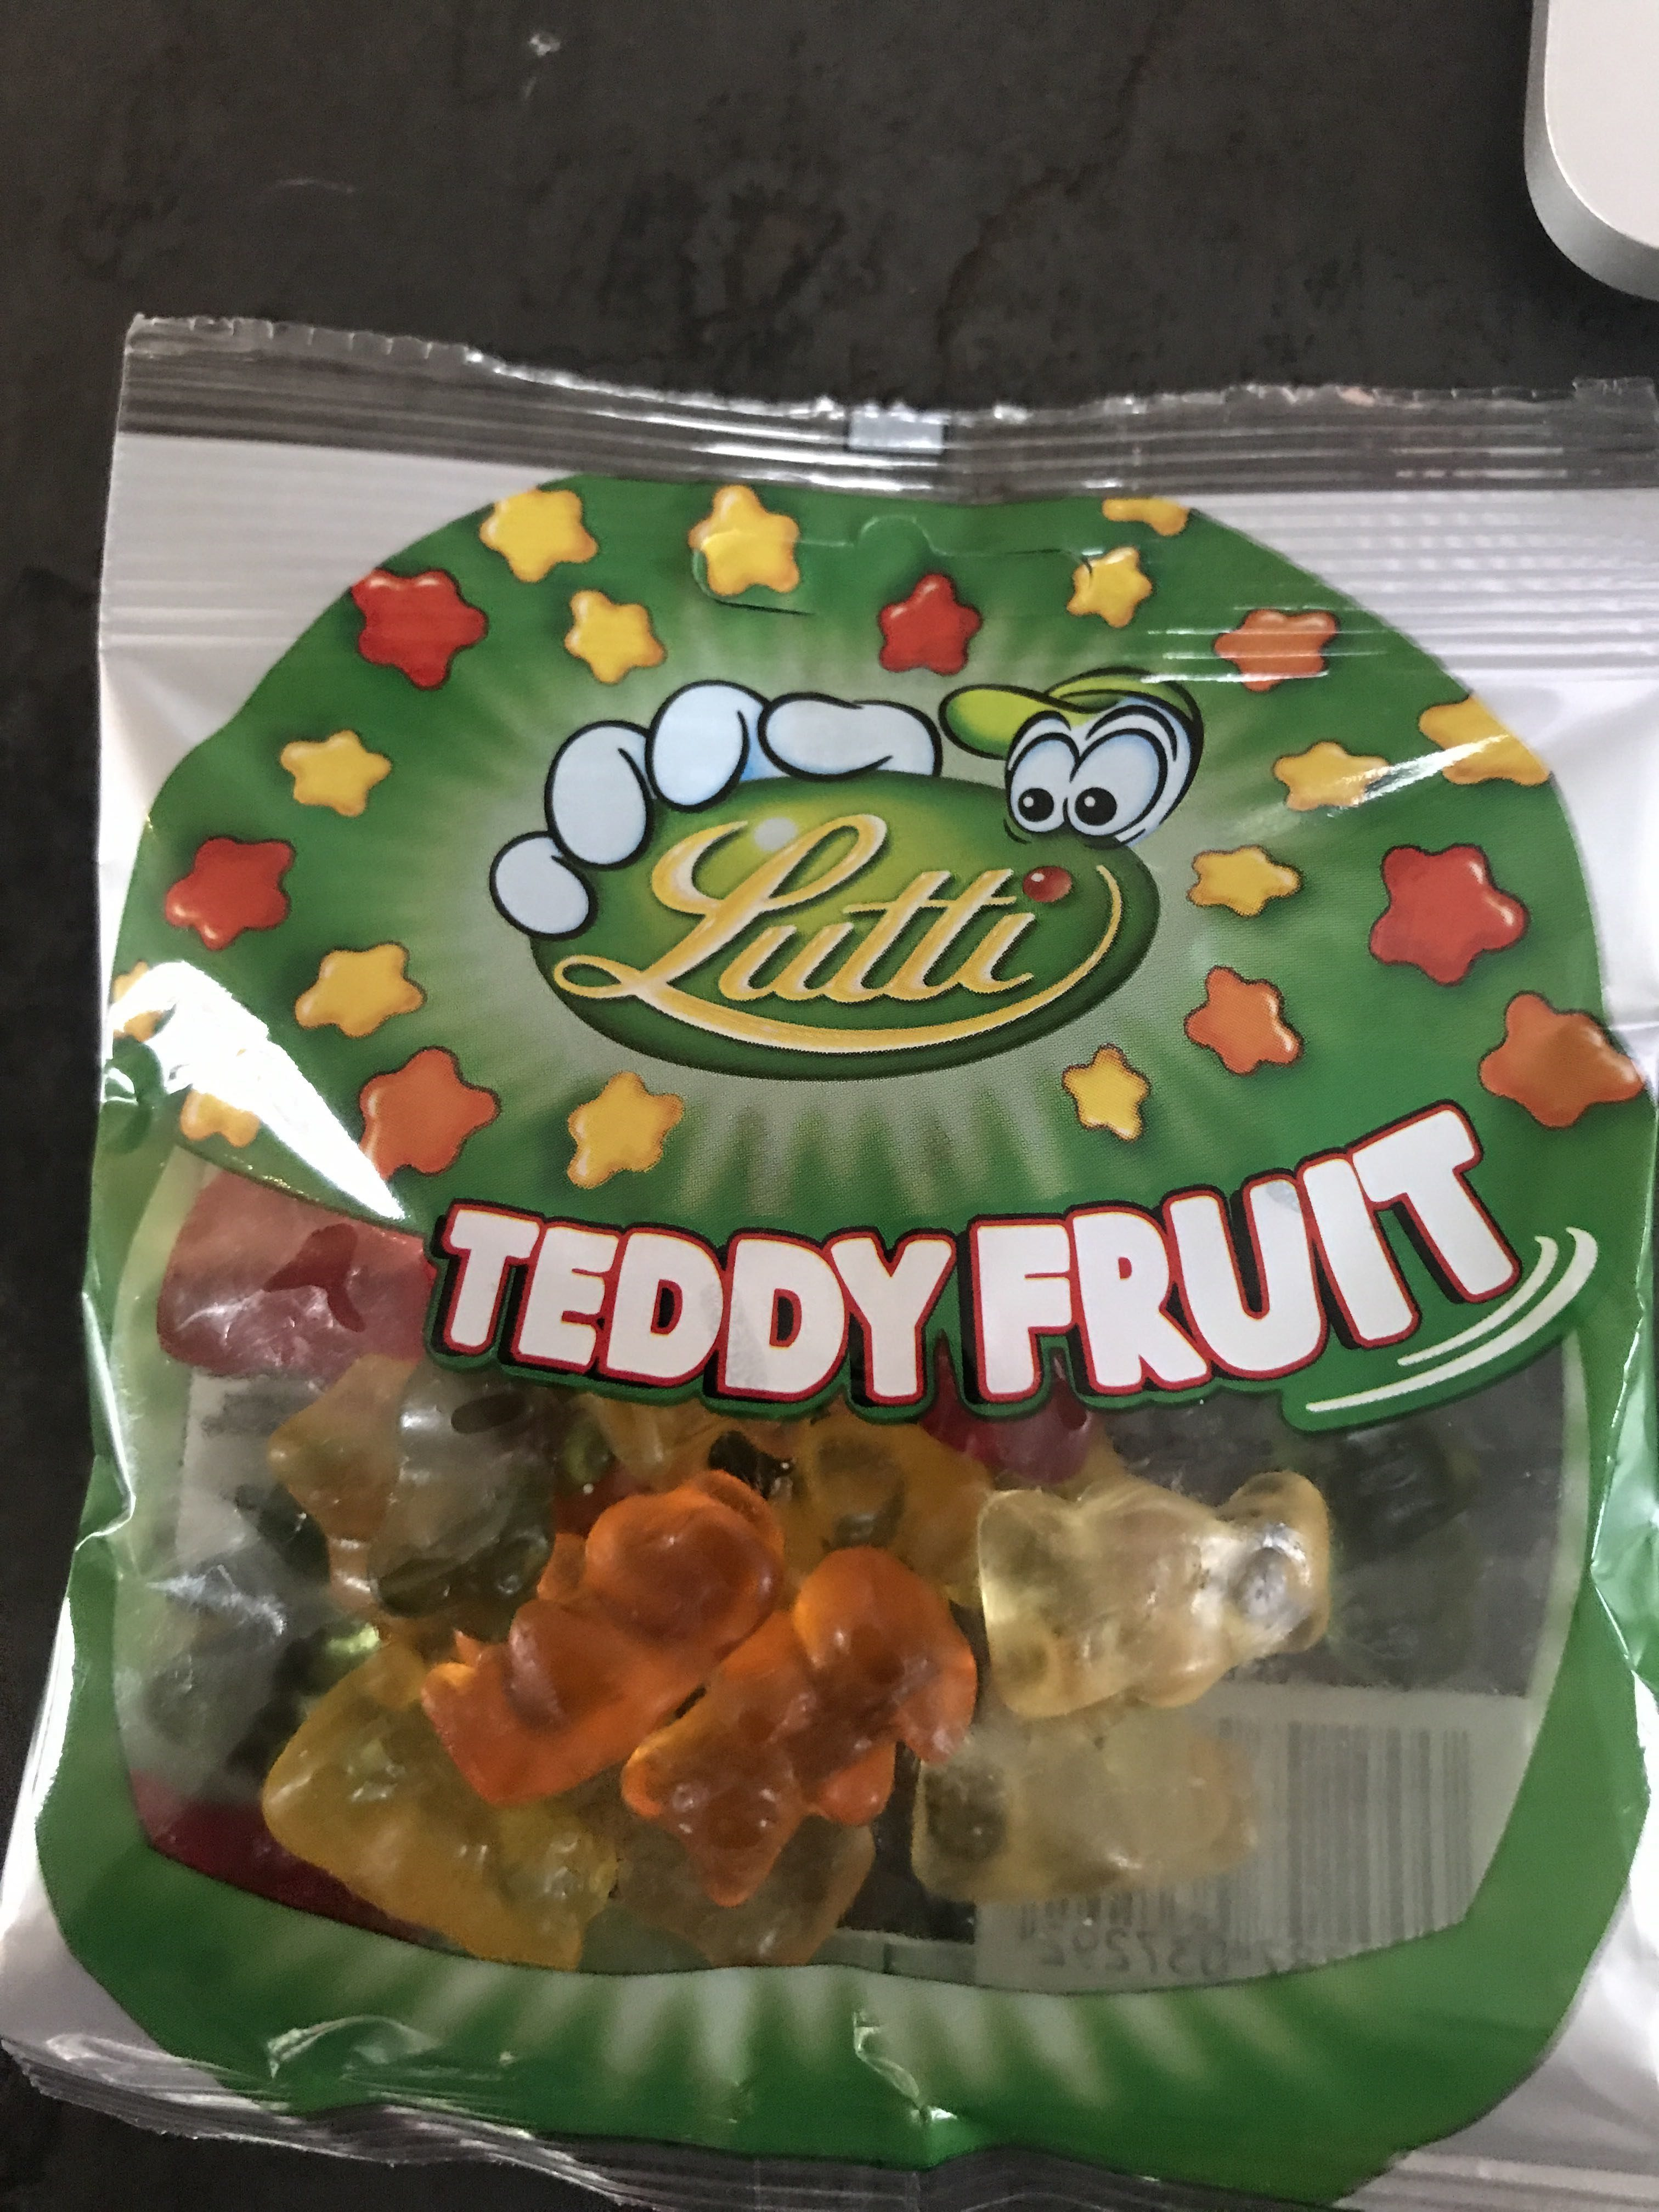 Teddy fruit - Product